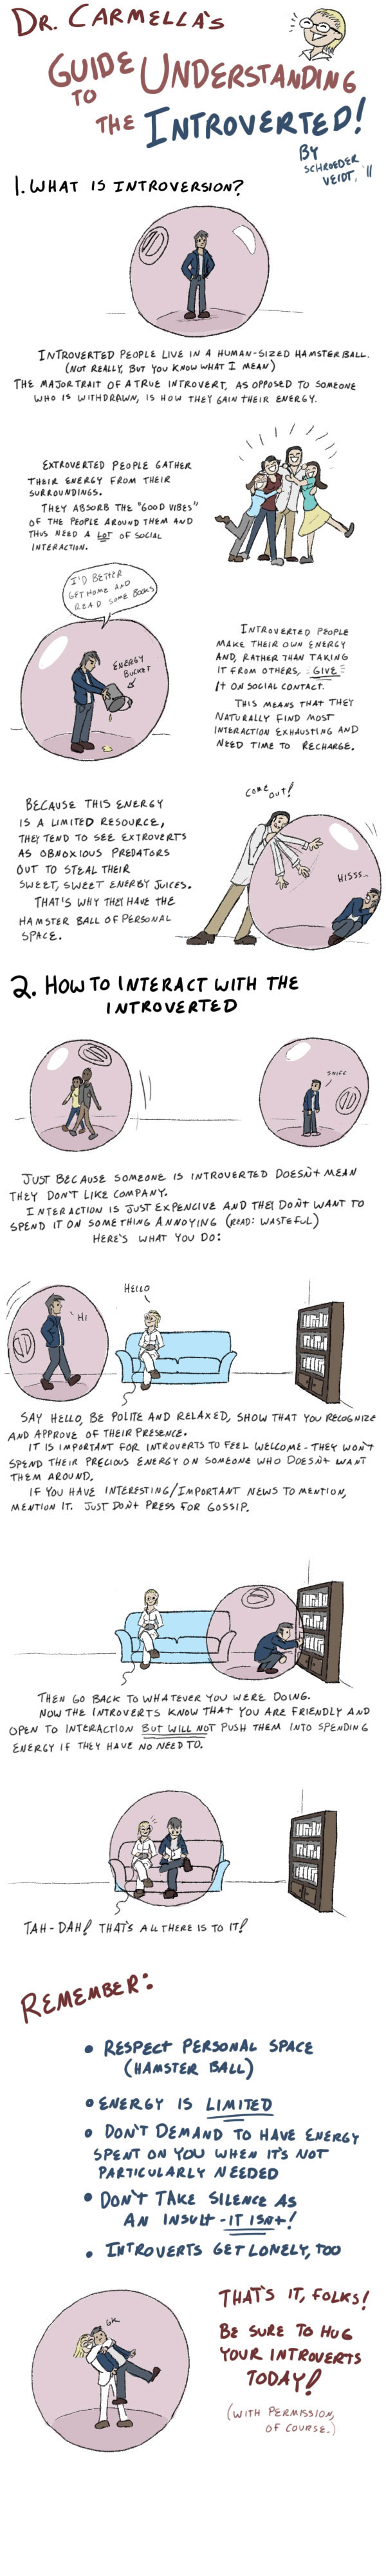 how_to_live_with_introverts_BIG